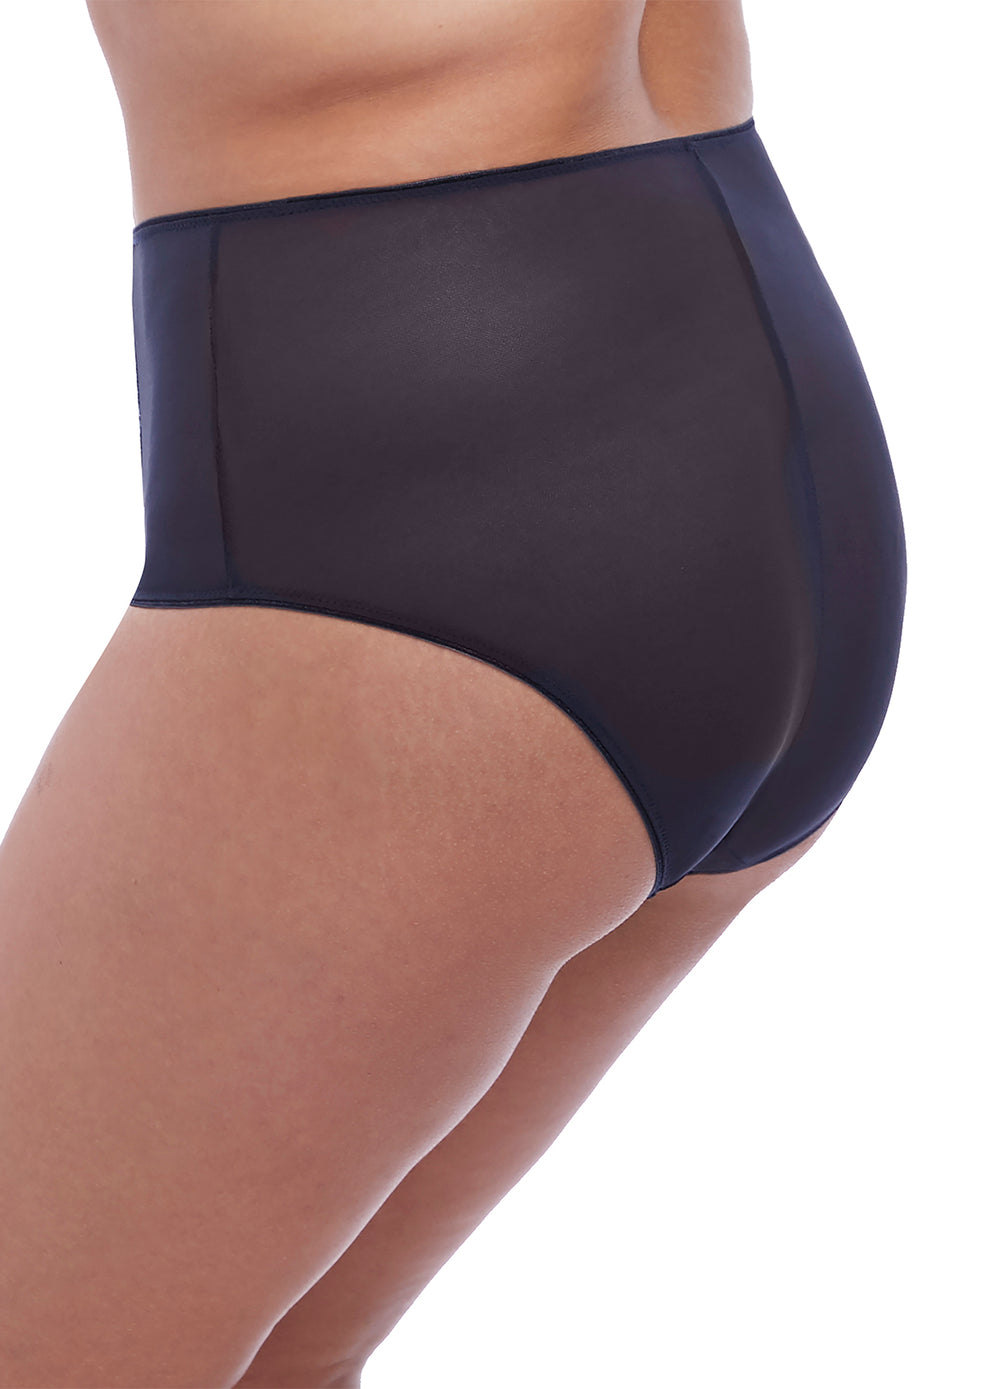 EL8906UNN Matilda Full Brief |UNICORN|